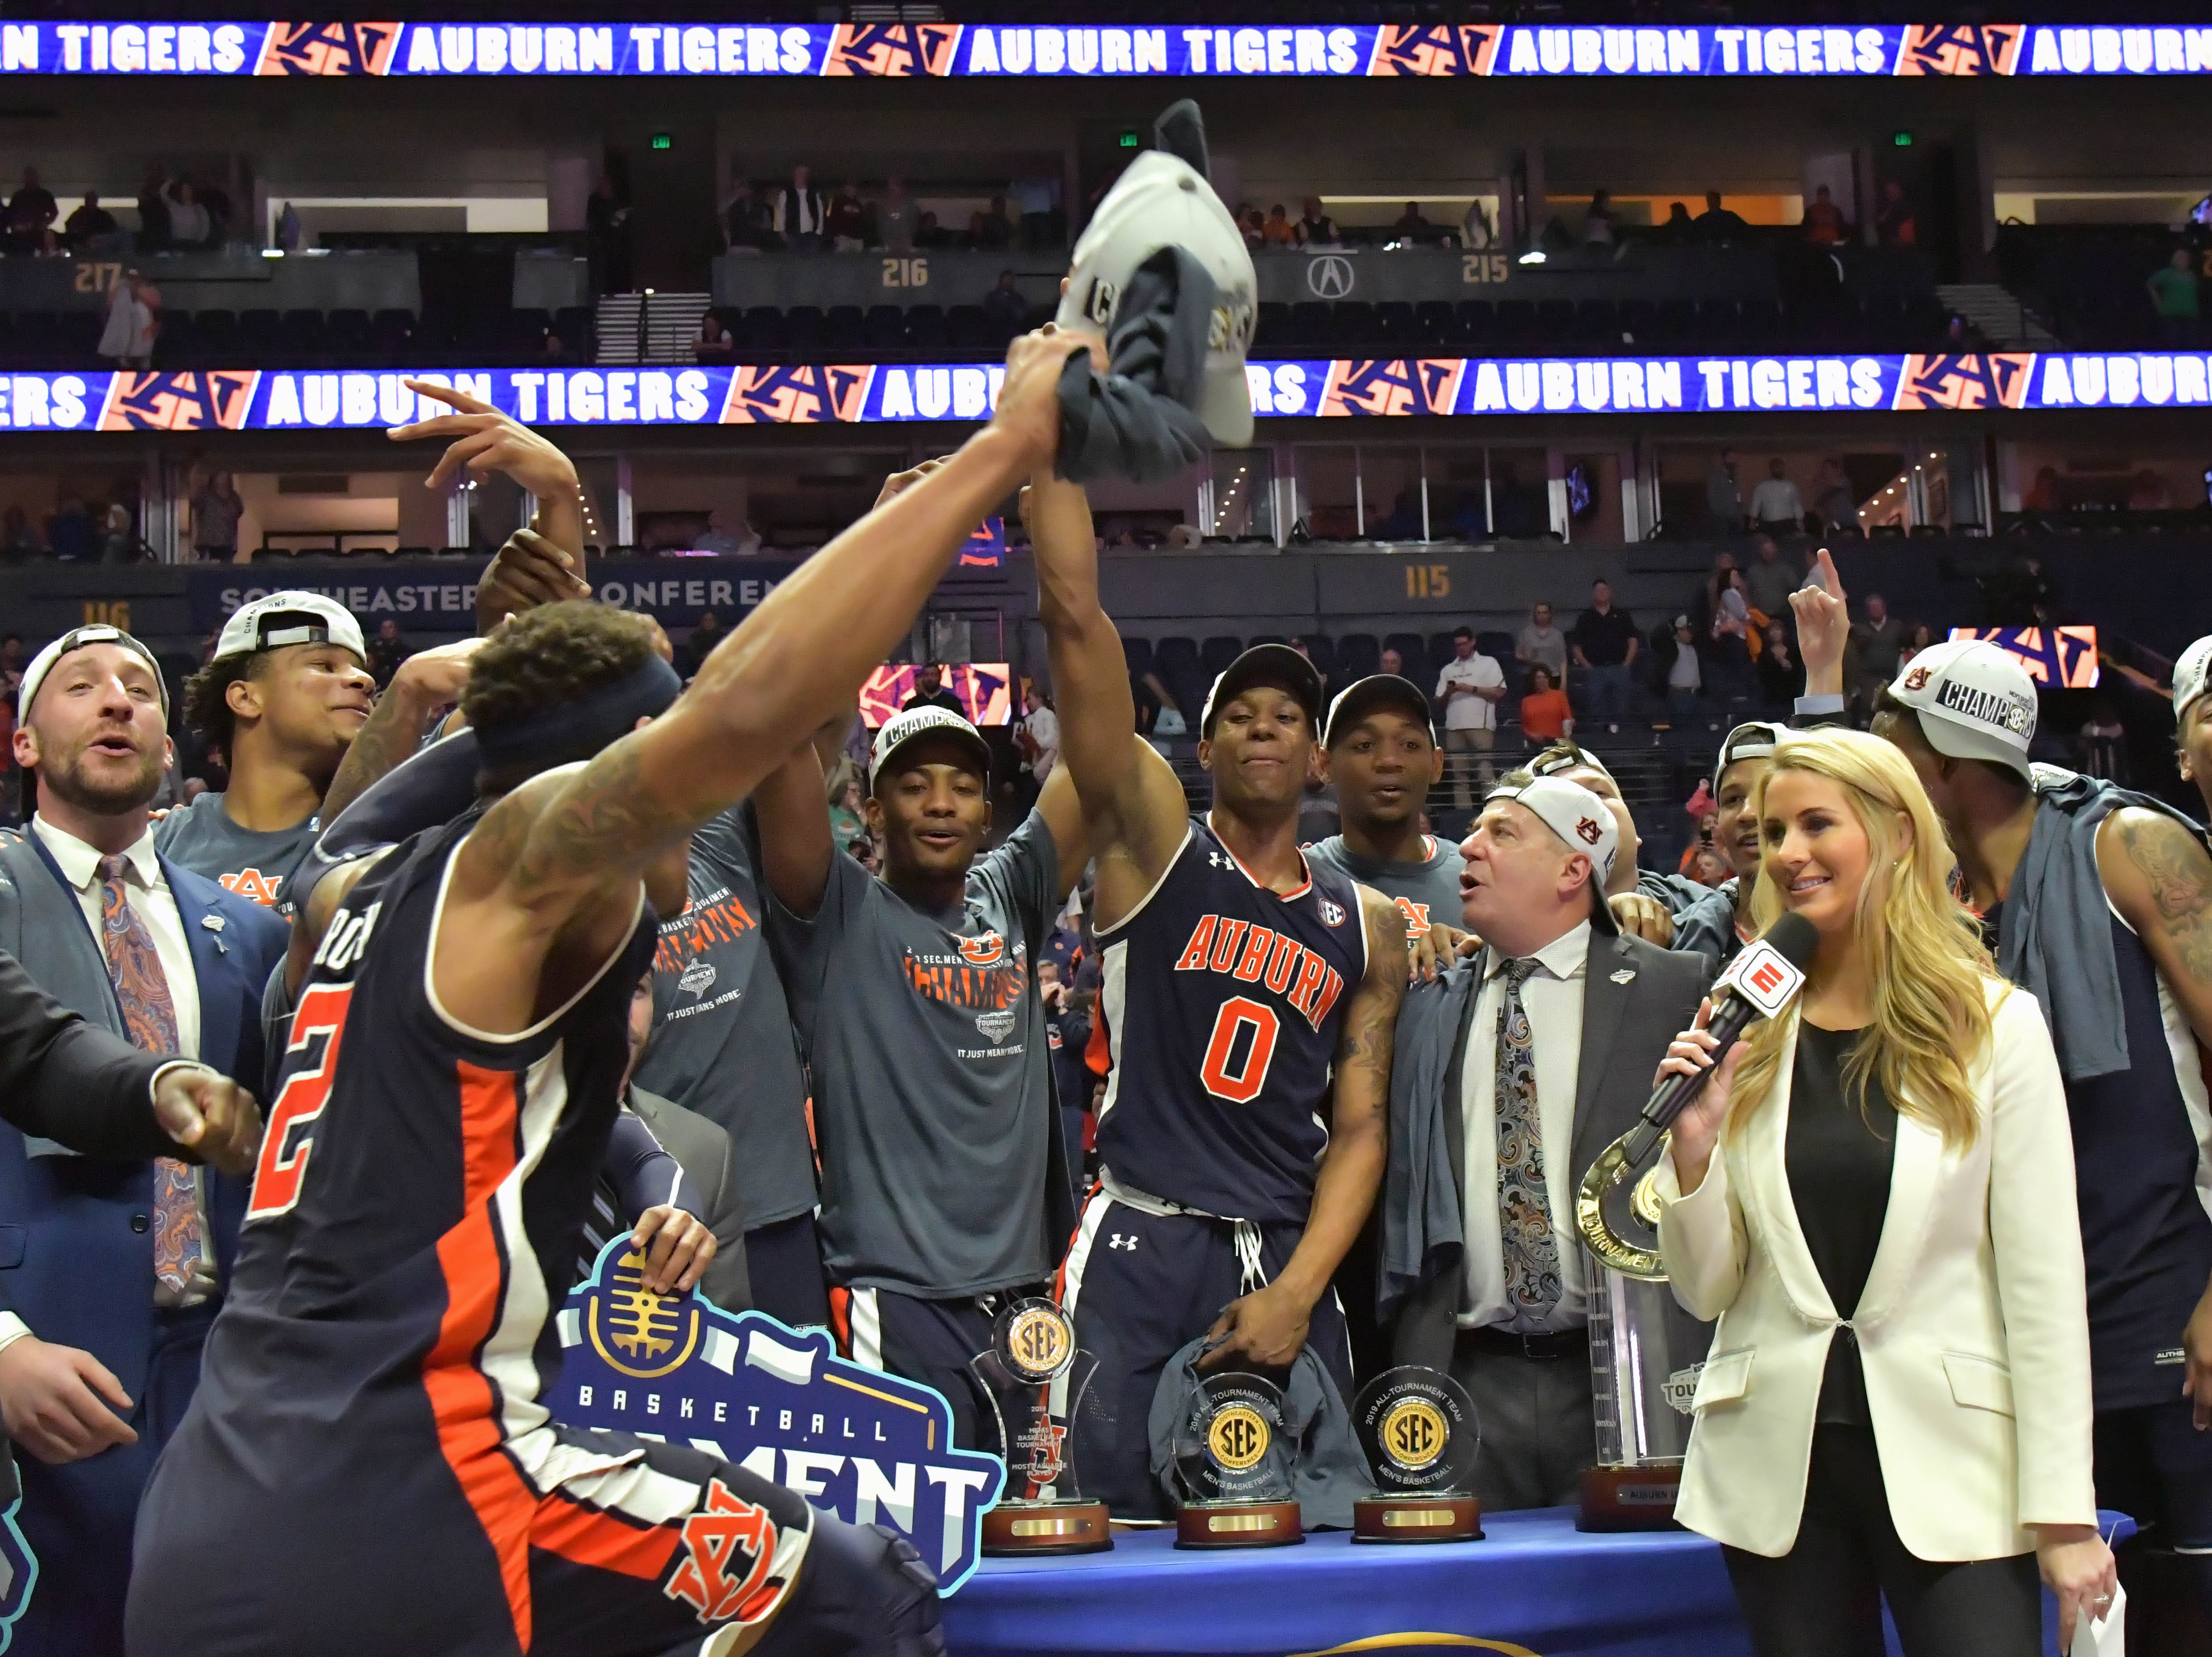 Mar 17, 2019; Nashville, TN, USA; Auburn Tigers guard Bryce Brown (2) celebrates with his teammates and Auburn head coach Bruce Pearl prior to the trophy presentation following the championship game between the Tennessee Volunteers and the Auburn Tigers  in the SEC conference tournament at Bridgestone Arena. Auburn won 84-64. Mandatory Credit: Jim Brown-USA TODAY Sports